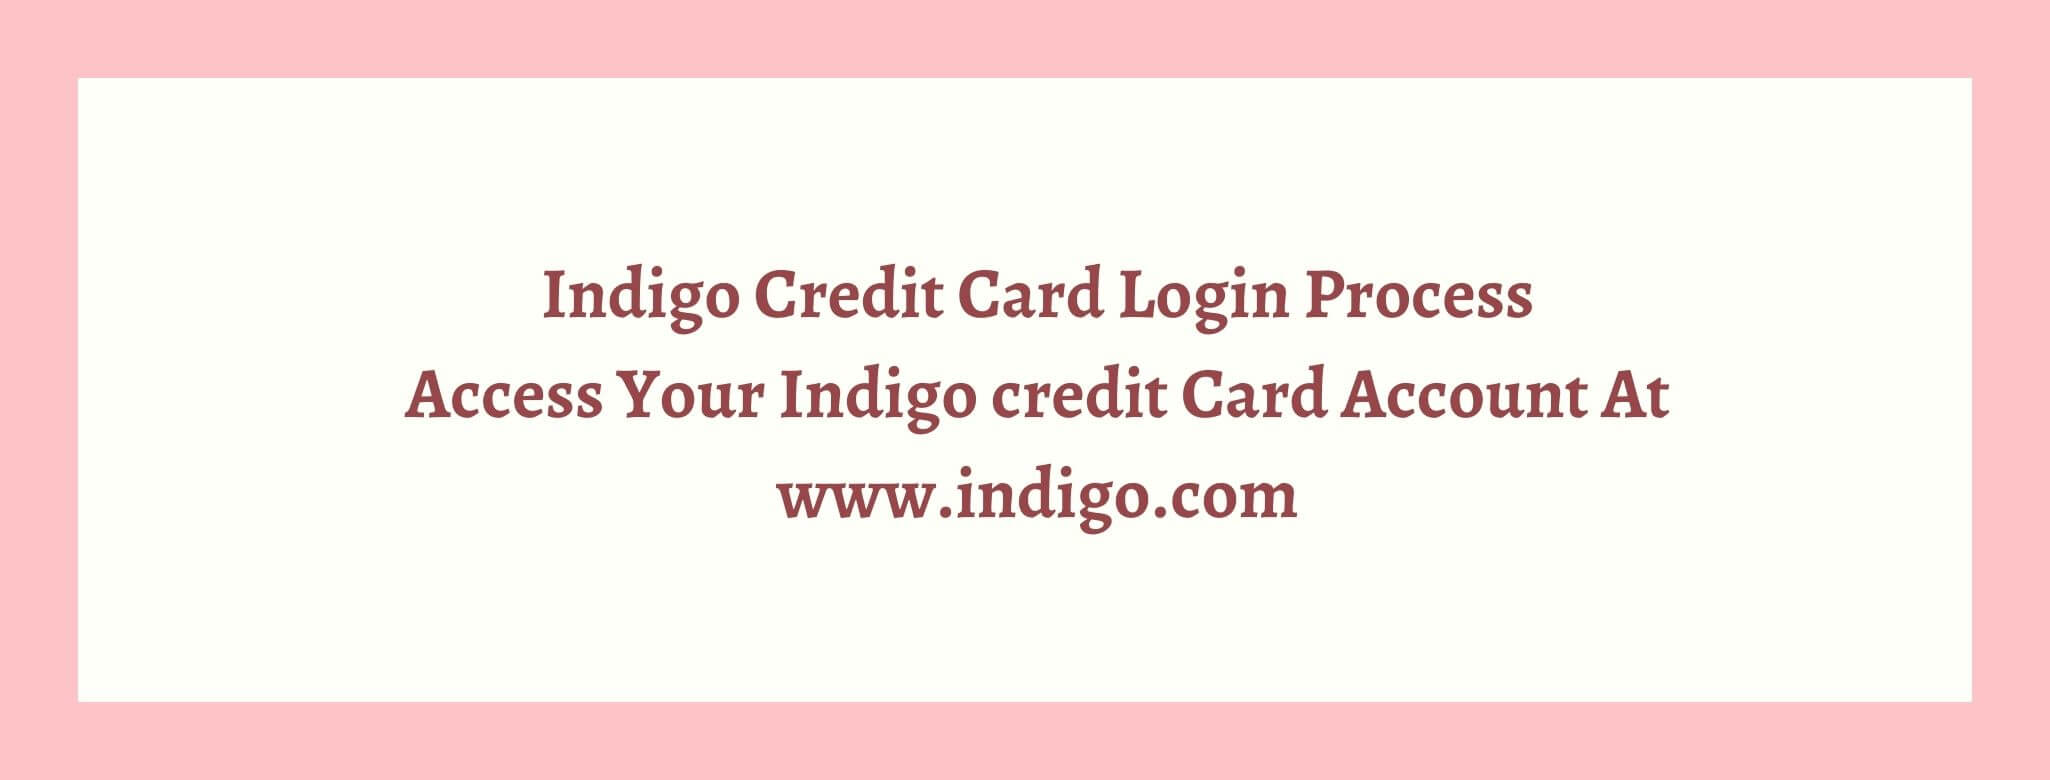 indigo credit card login